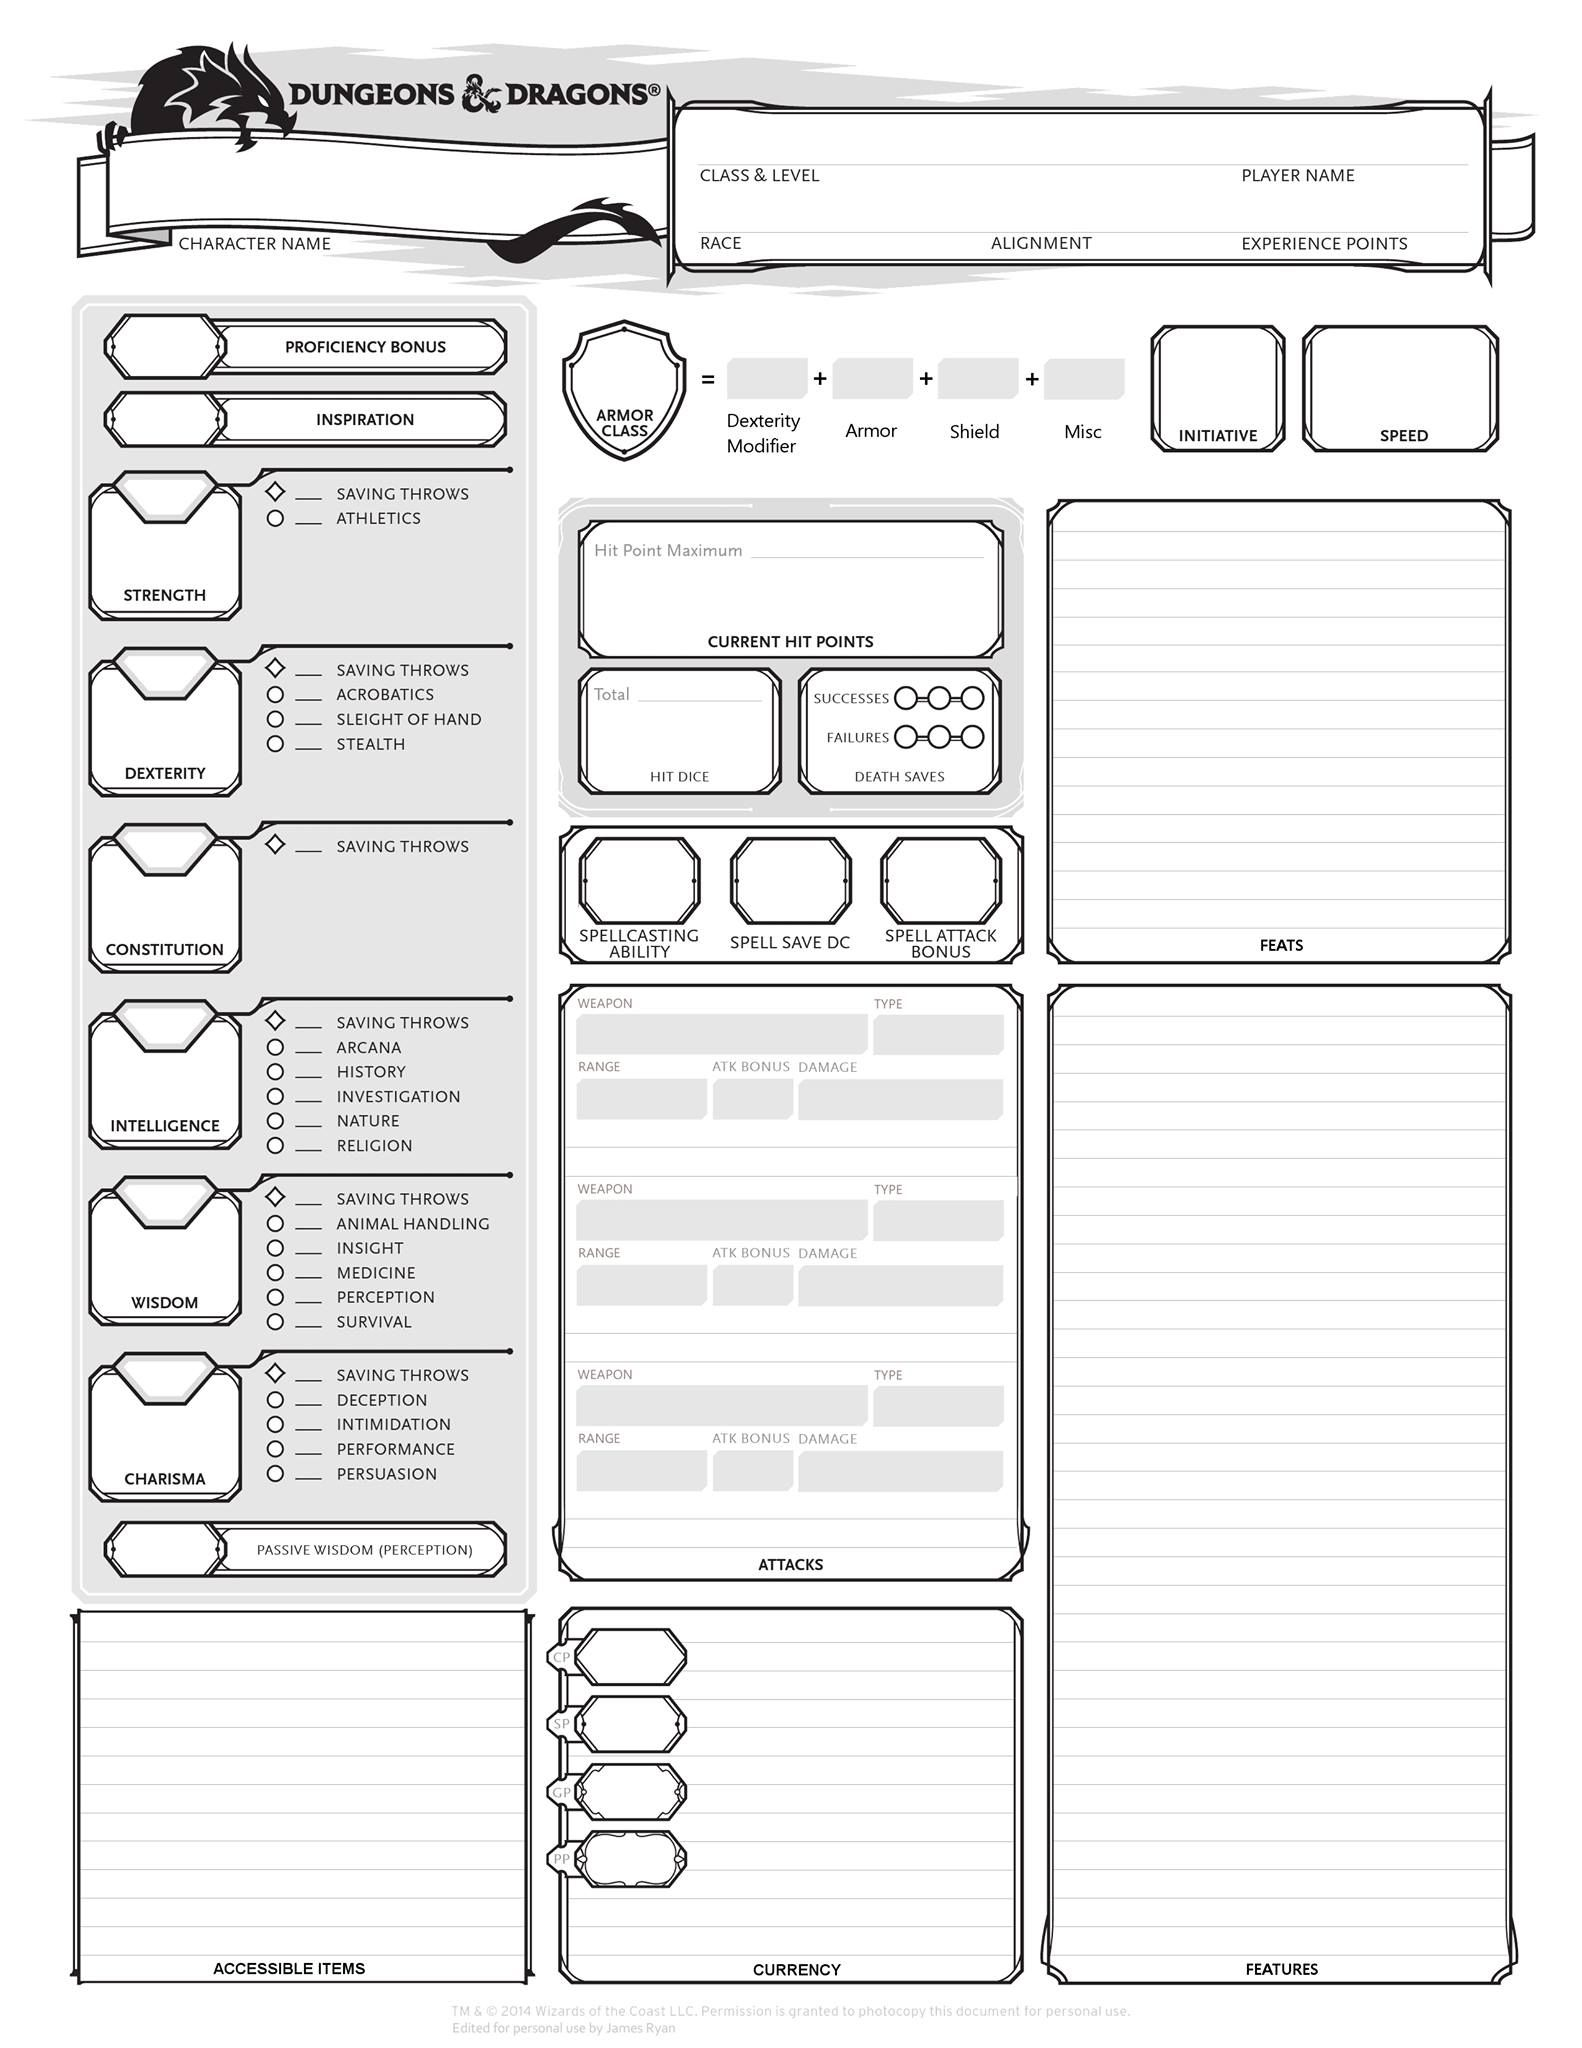 Dd Character Sheet Yahoo Image Search Results